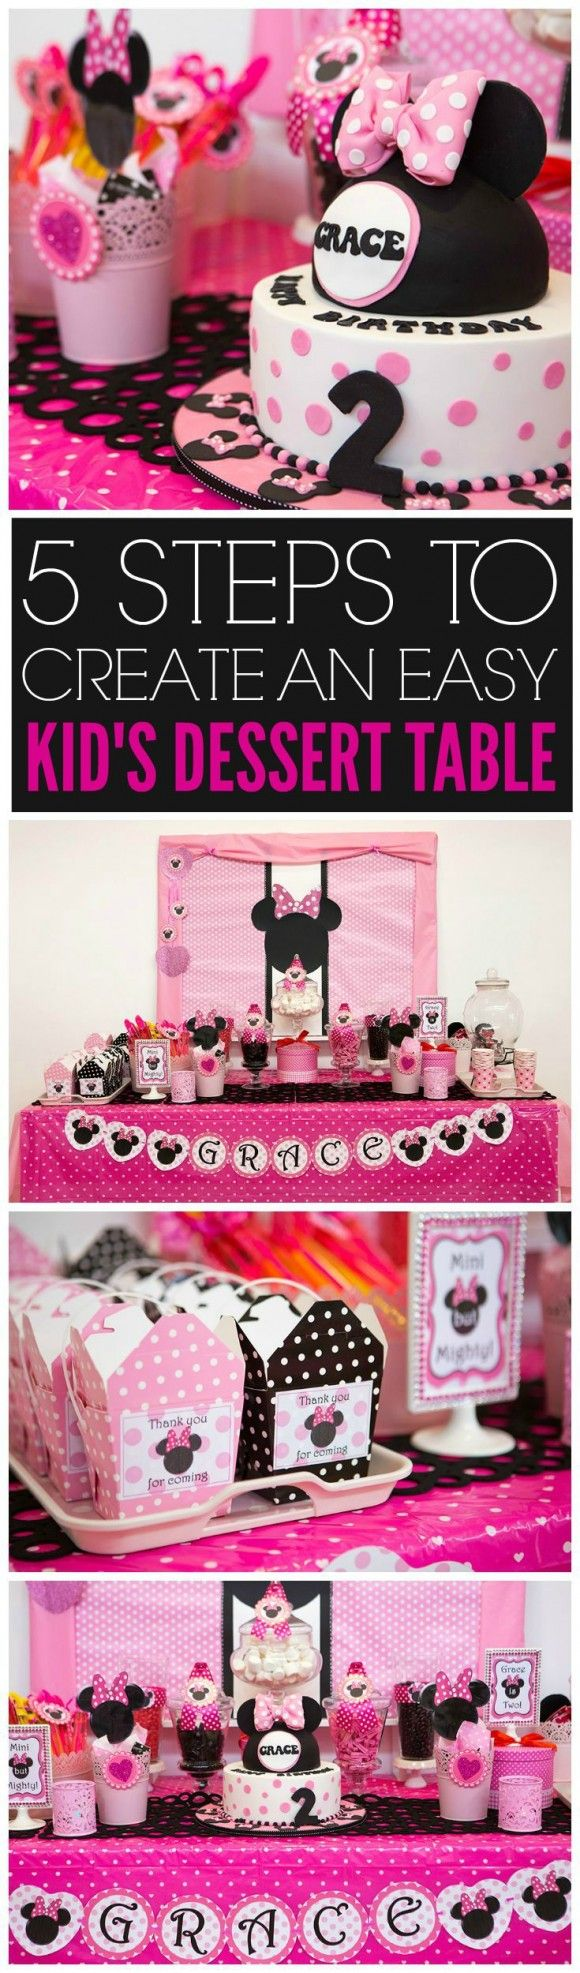 5 Steps to Create An Easy Child Dessert Table | CatchMyParty.com